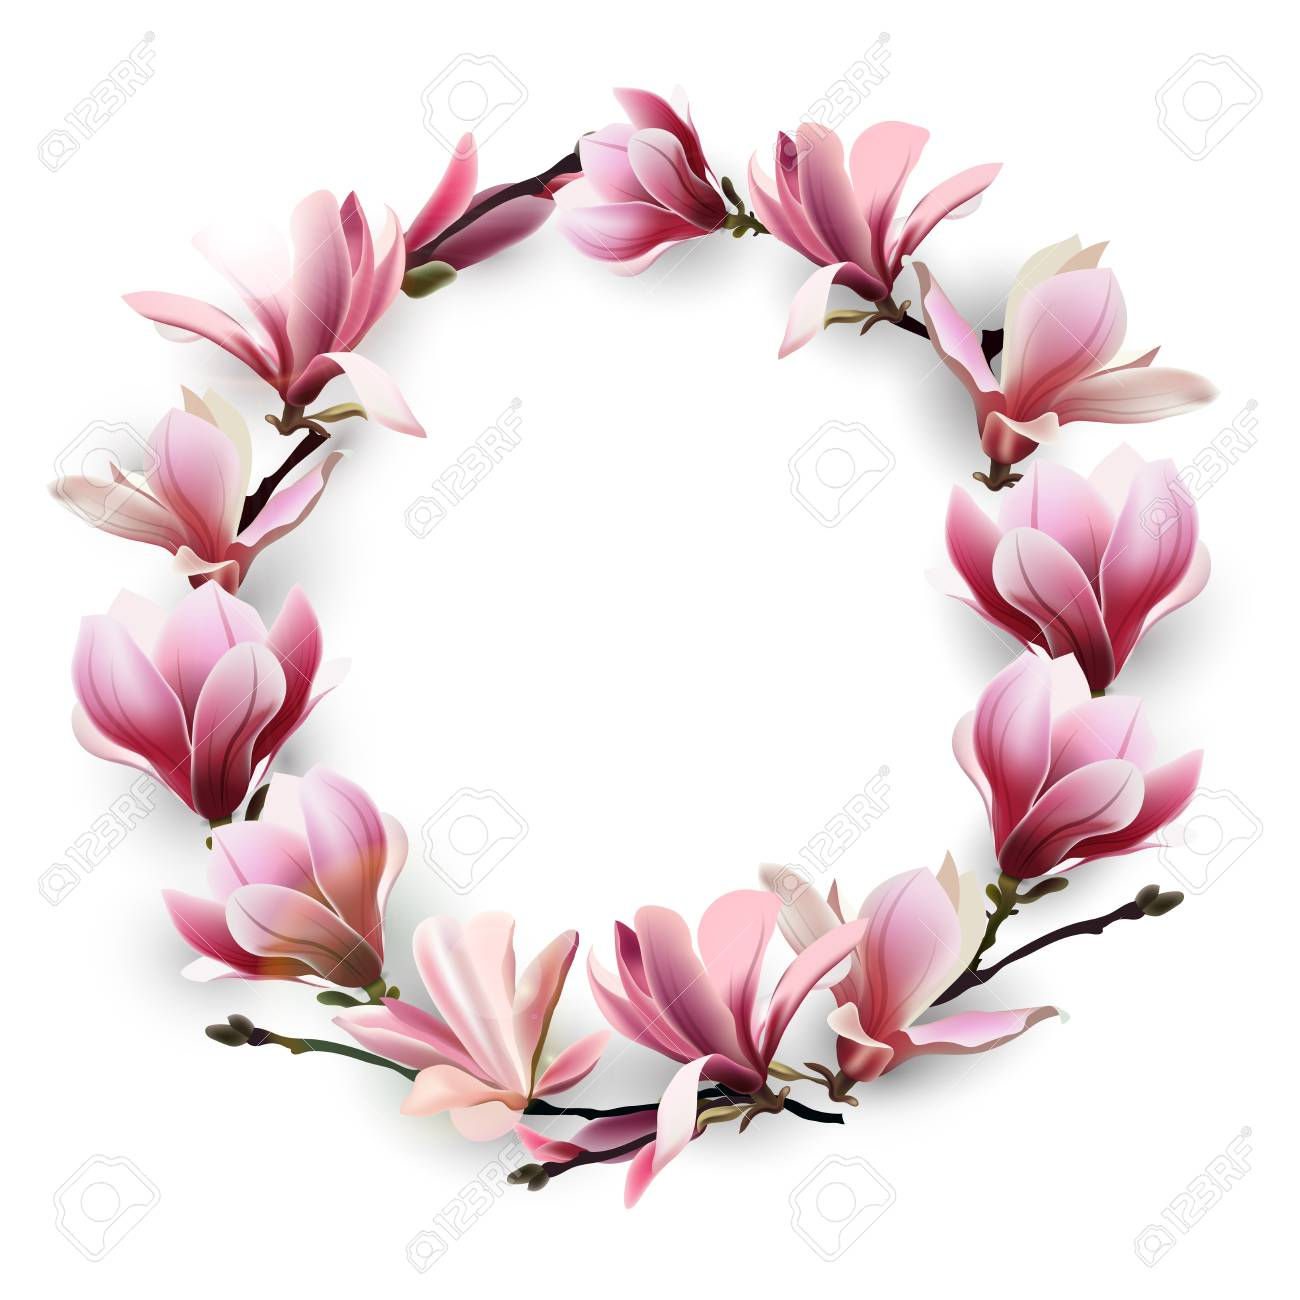 Wreath Of Delicate Flowers Pink Magnolia Template For Birthday Cards Mothers Day Card